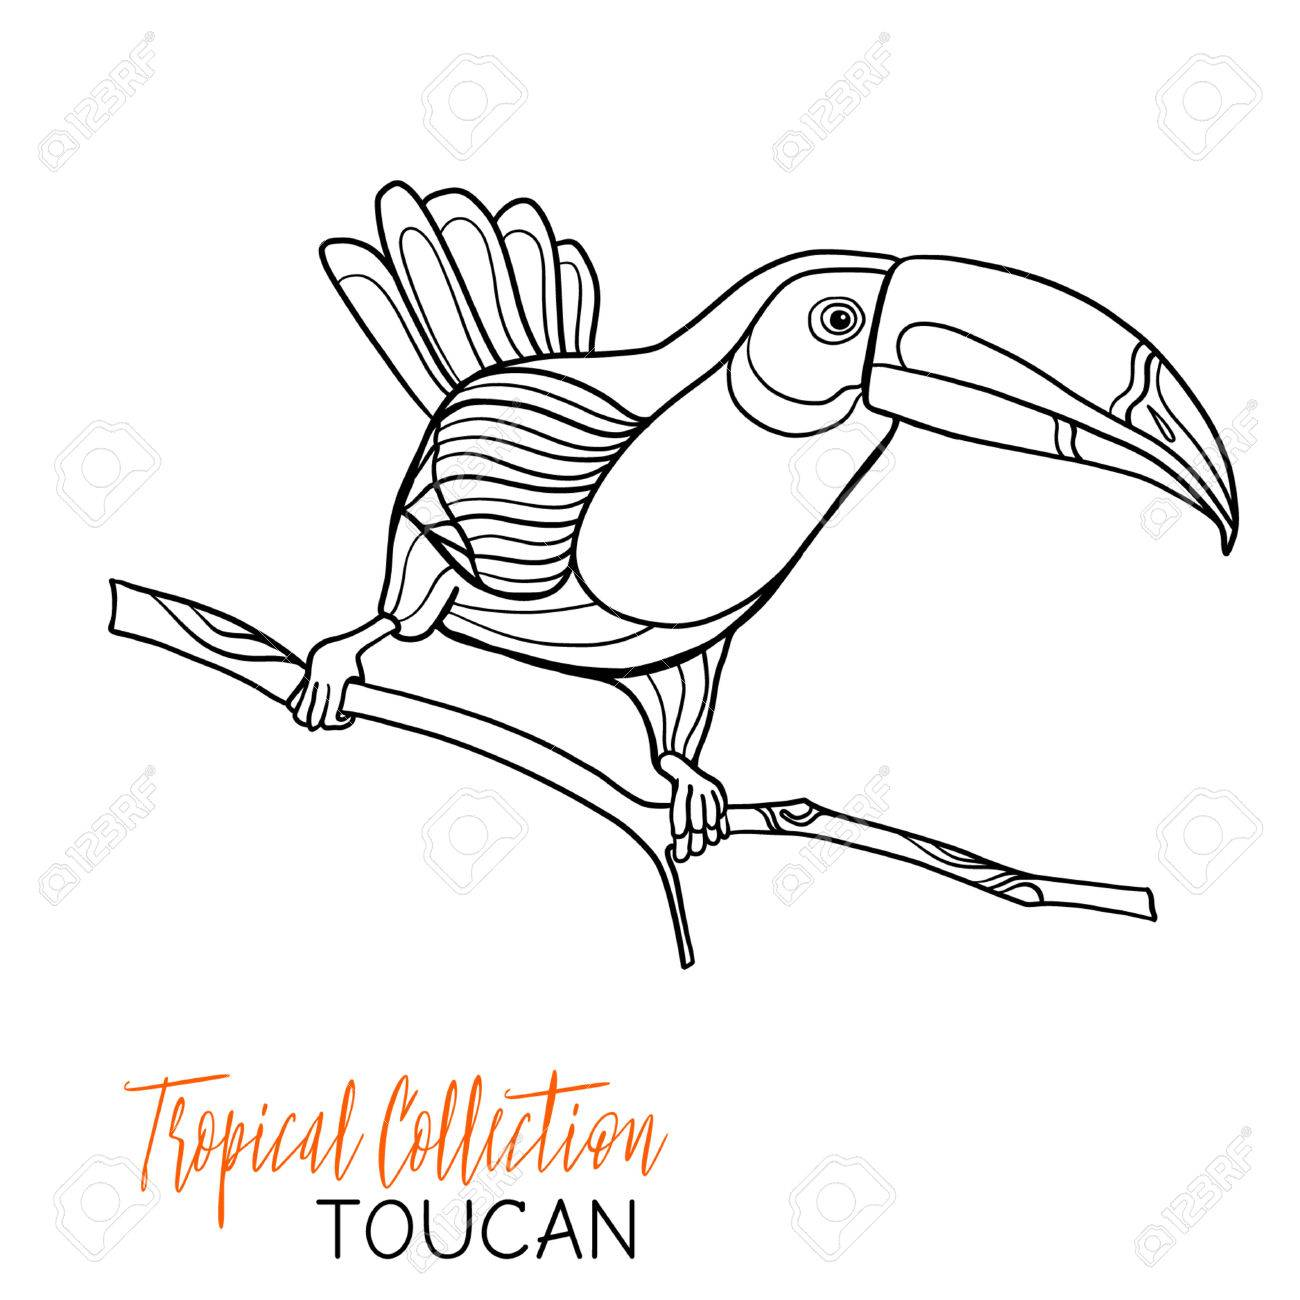 1300x1300 Toucan. Tropical Bird. Vector Illustration. Coloring Book